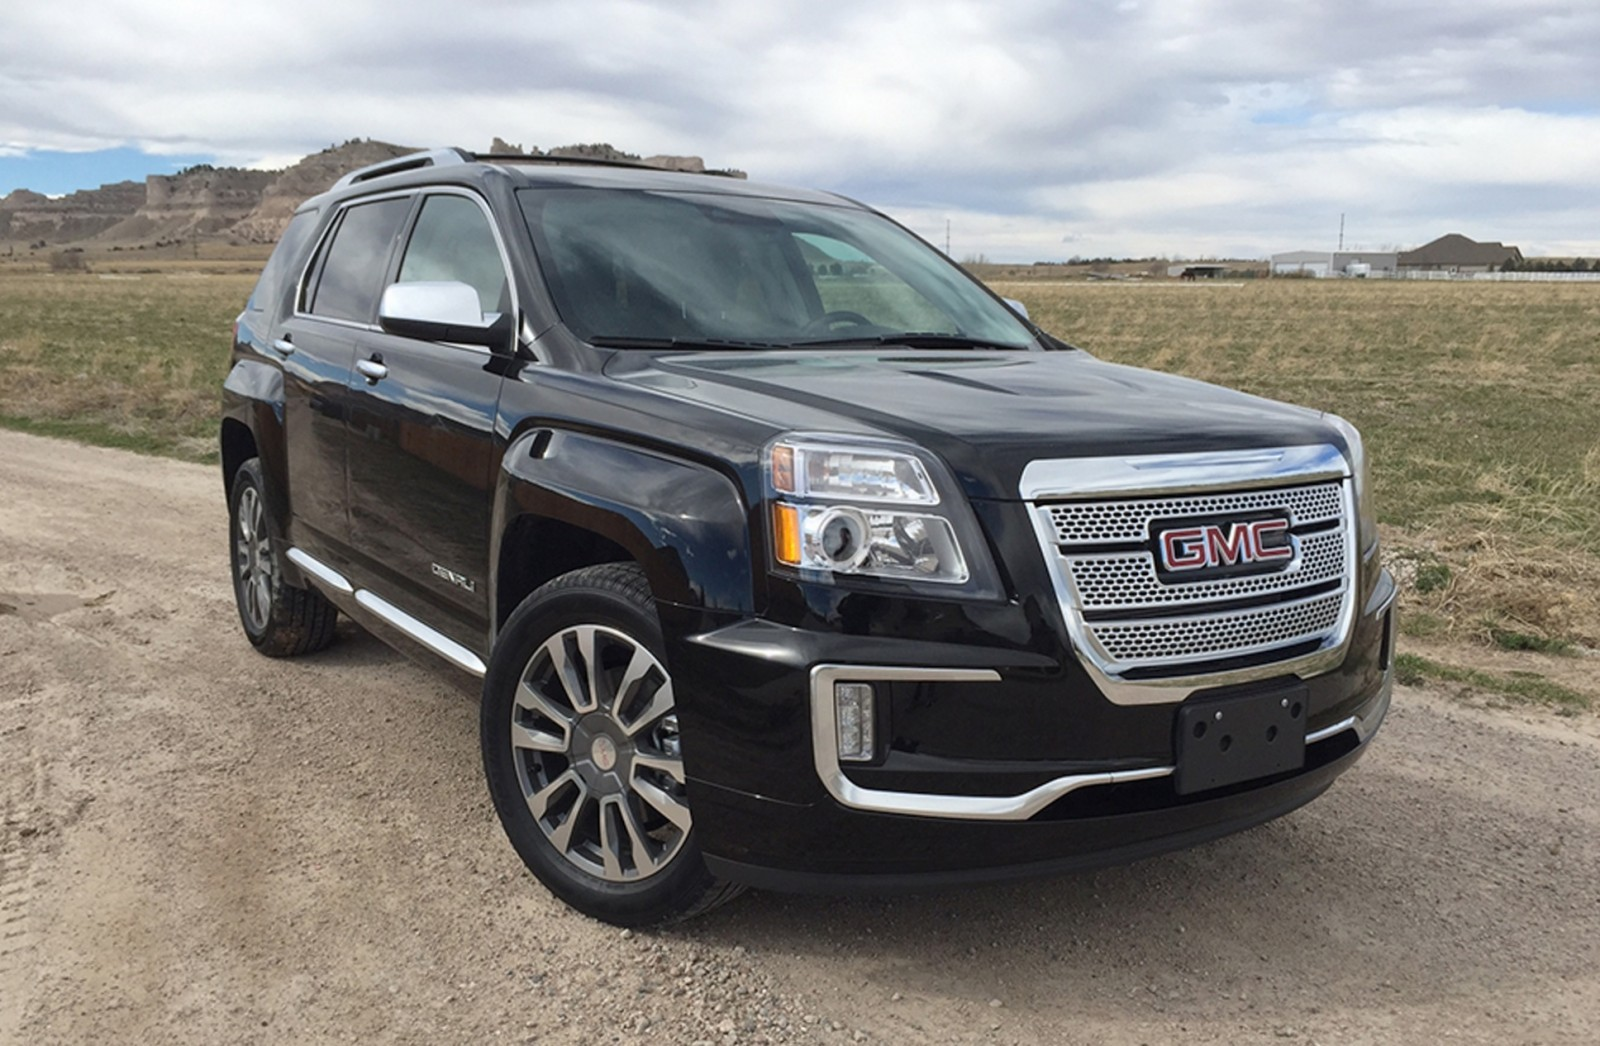 road test review 2016 gmc terrain denali awd by tim esterdahl car revs. Black Bedroom Furniture Sets. Home Design Ideas